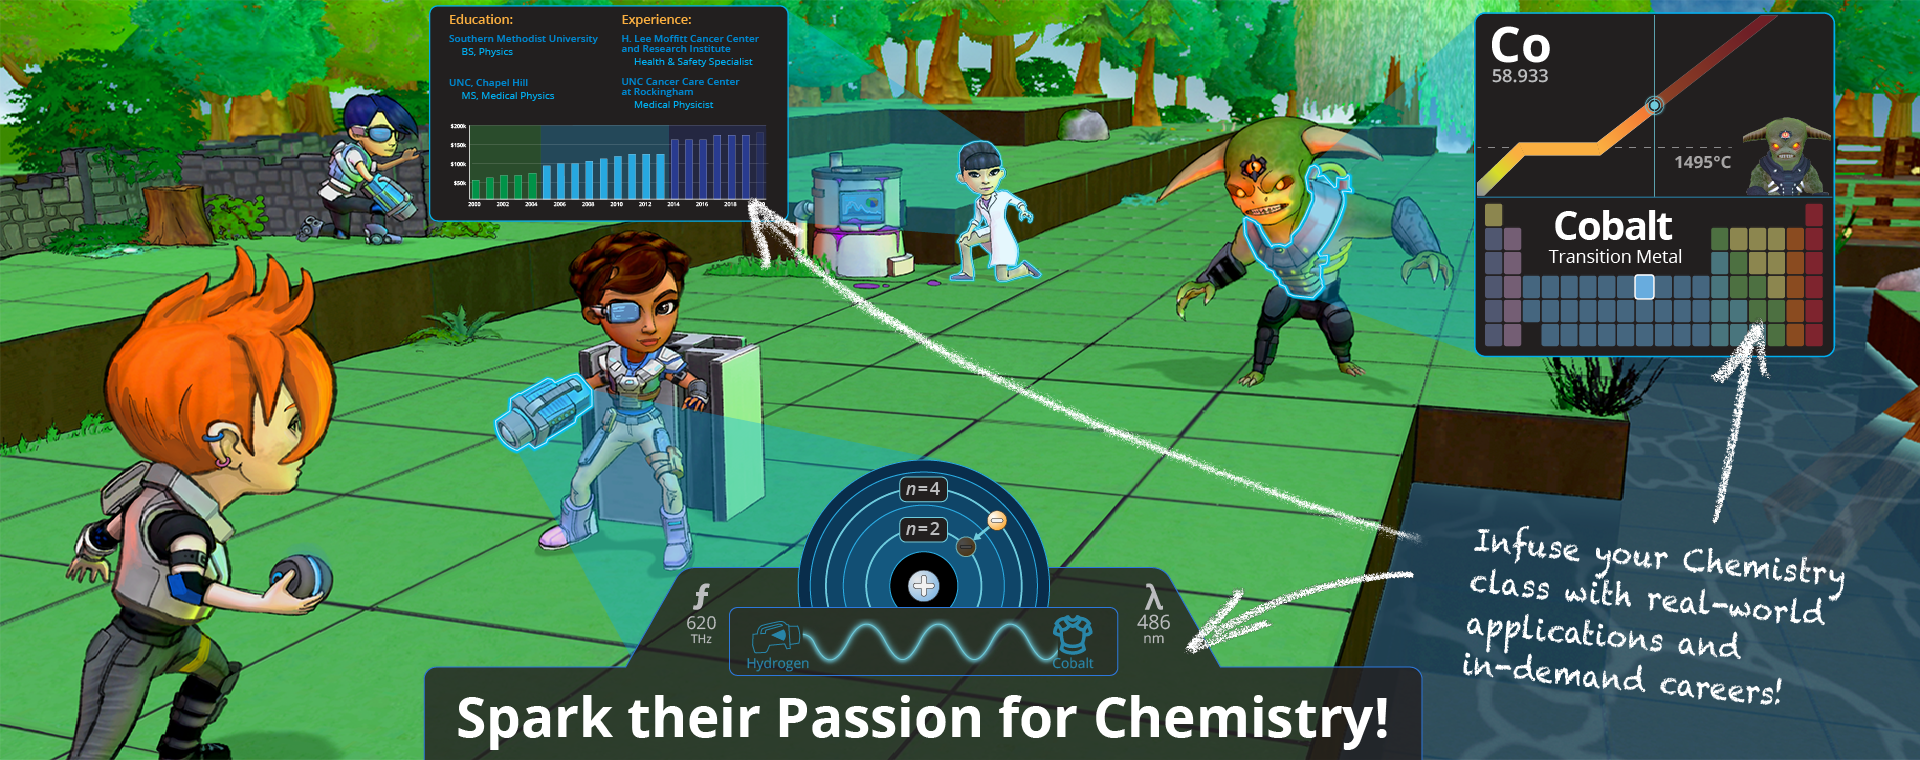 Spark their passion for Chemistry! Infuse your Chemistry class with real-world applications and in-demand careers! Sci-Ops: Global Defense is a chemistry game that teaches at the high school level.